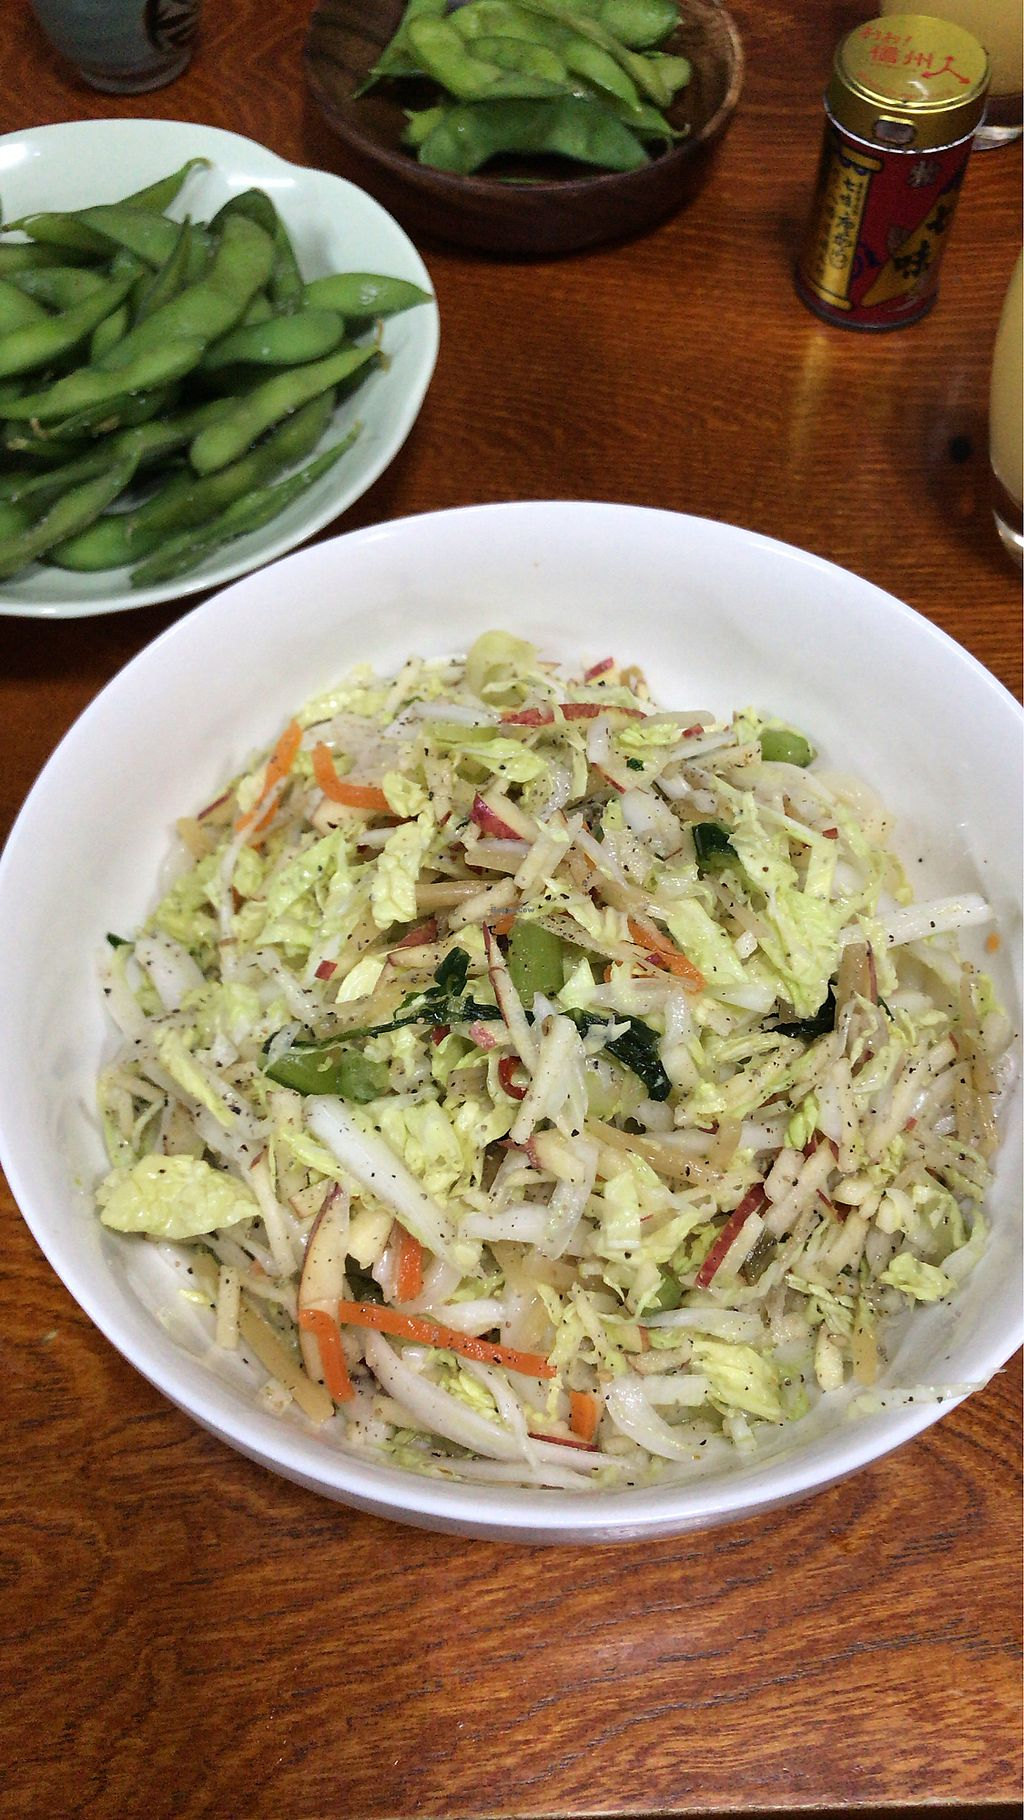 "Photo of Sobadokoro Yariya  by <a href=""/members/profile/MelissaW"">MelissaW</a> <br/>Udon salad with edamame  <br/> February 4, 2018  - <a href='/contact/abuse/image/90818/354828'>Report</a>"